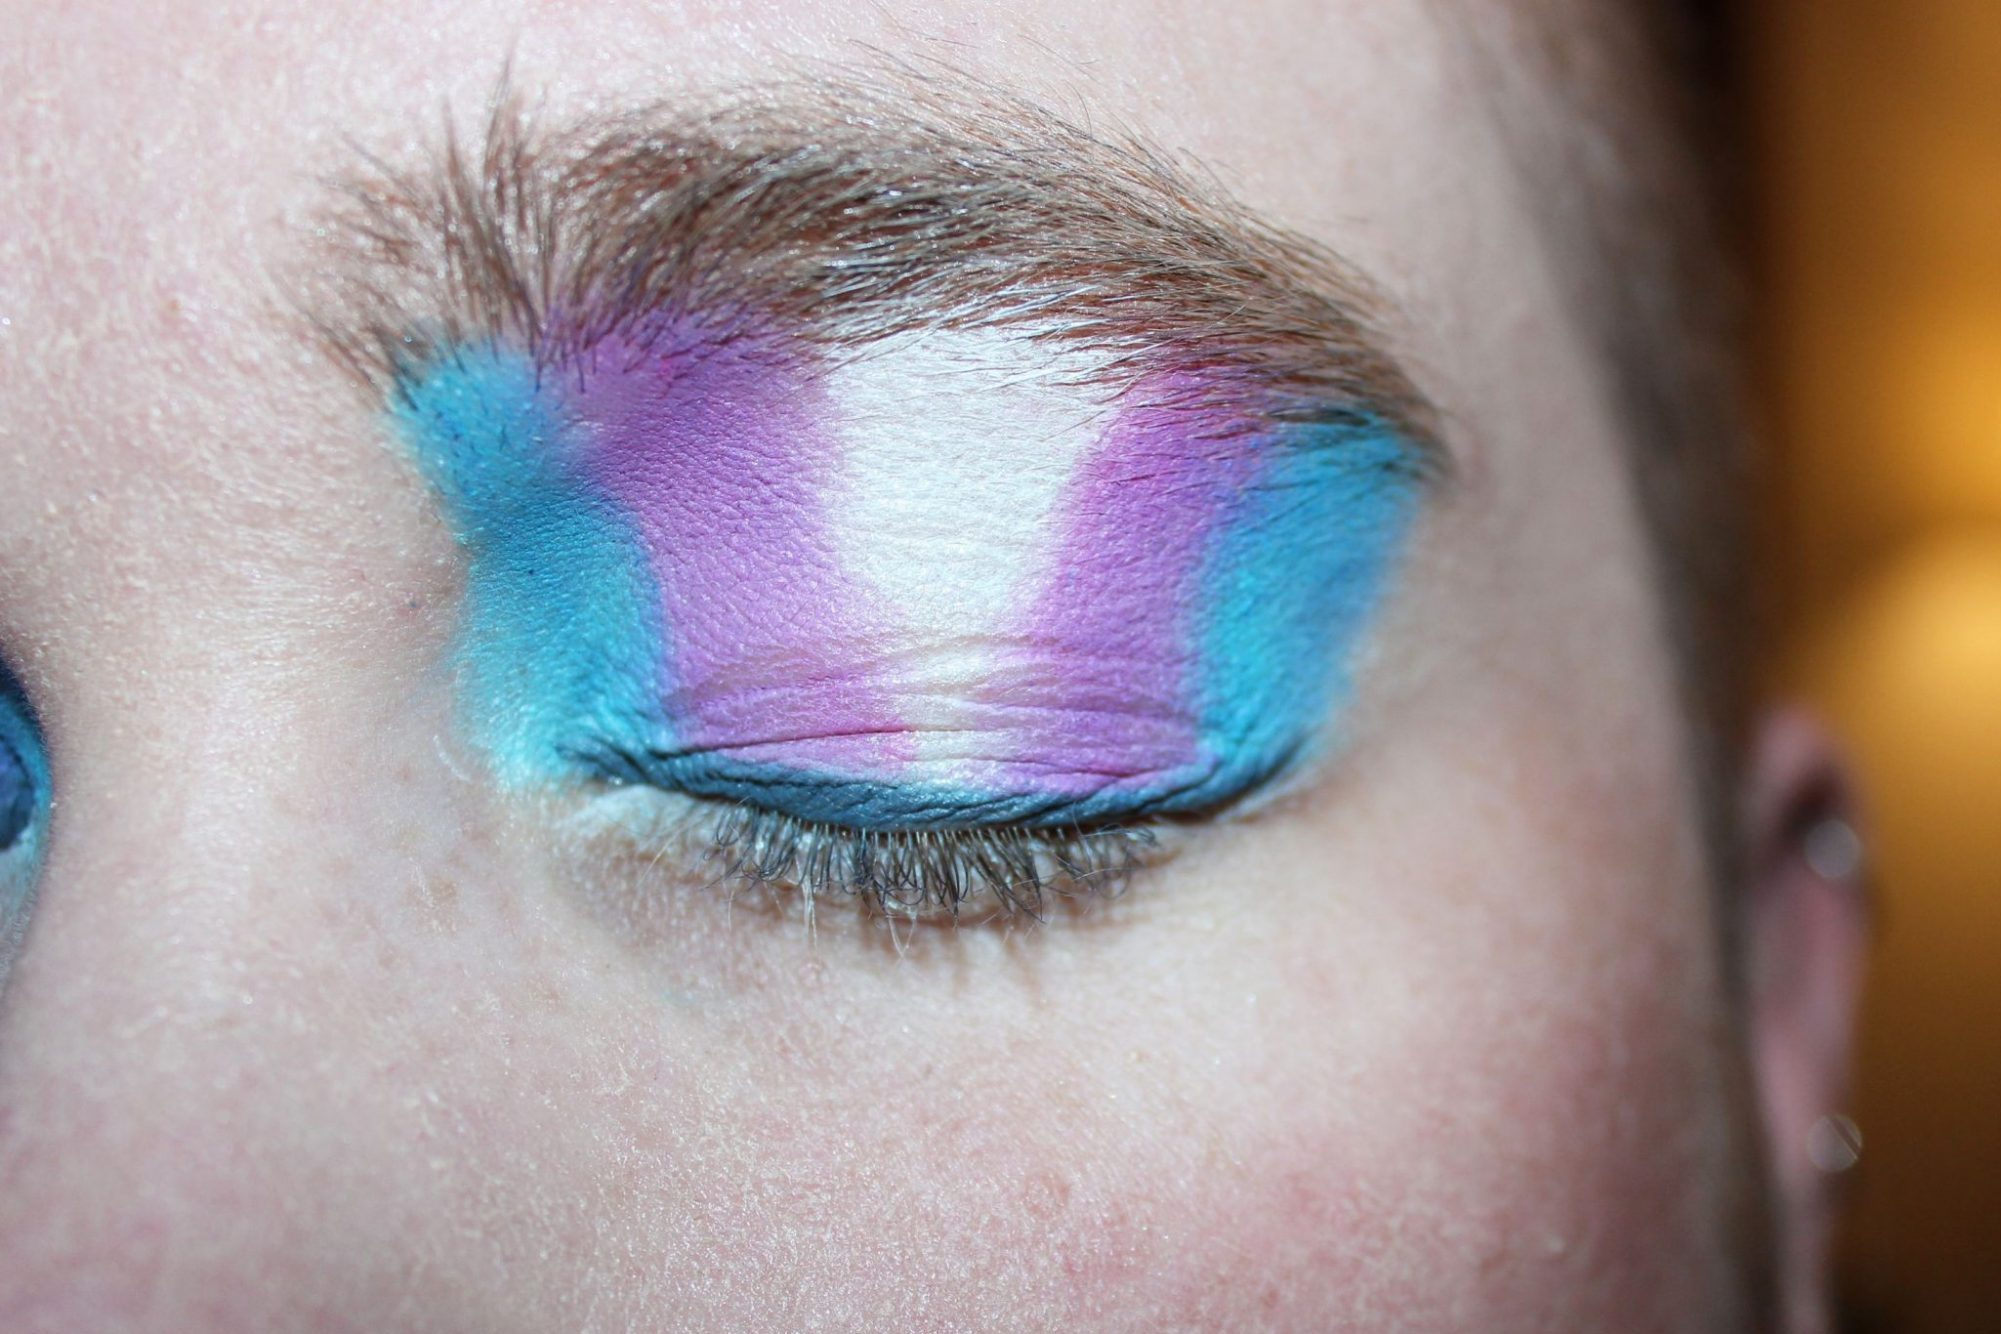 Photo of a trans person with eyeshadow that is the color of the transgender pride flag